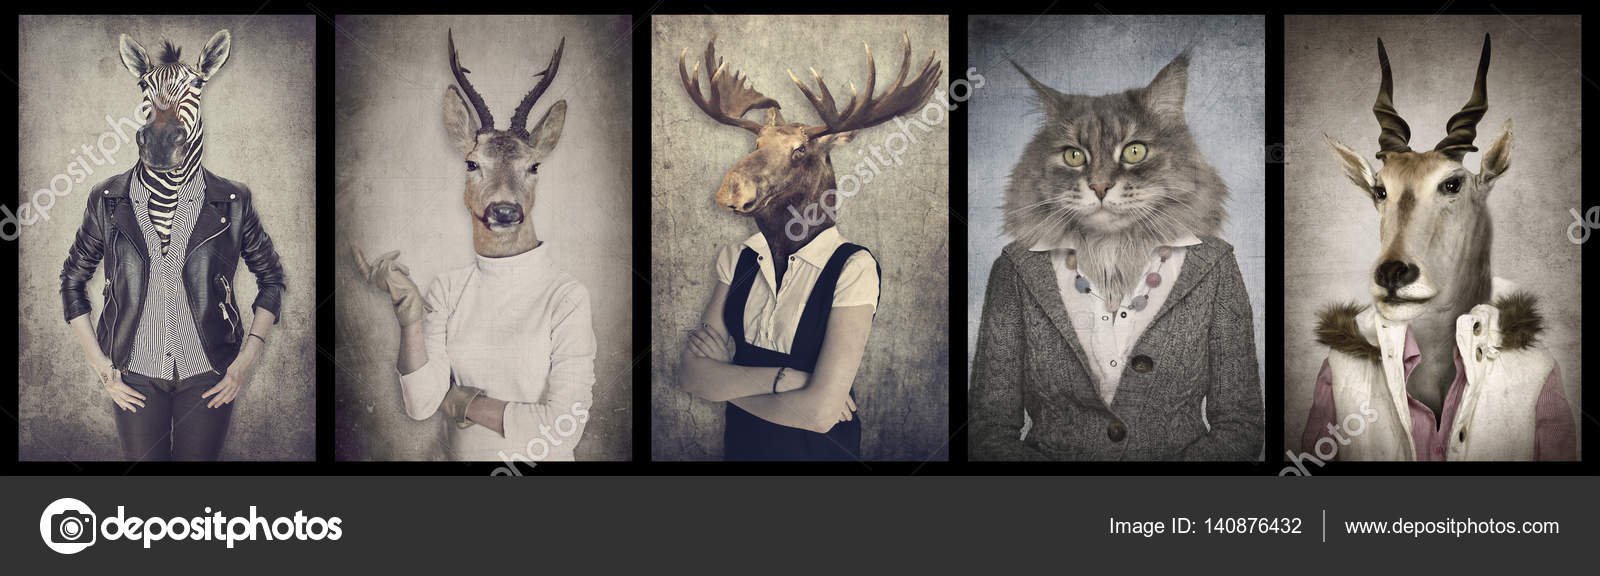 Animals Clothes Concept Graphic Vintage Style стоковое фото